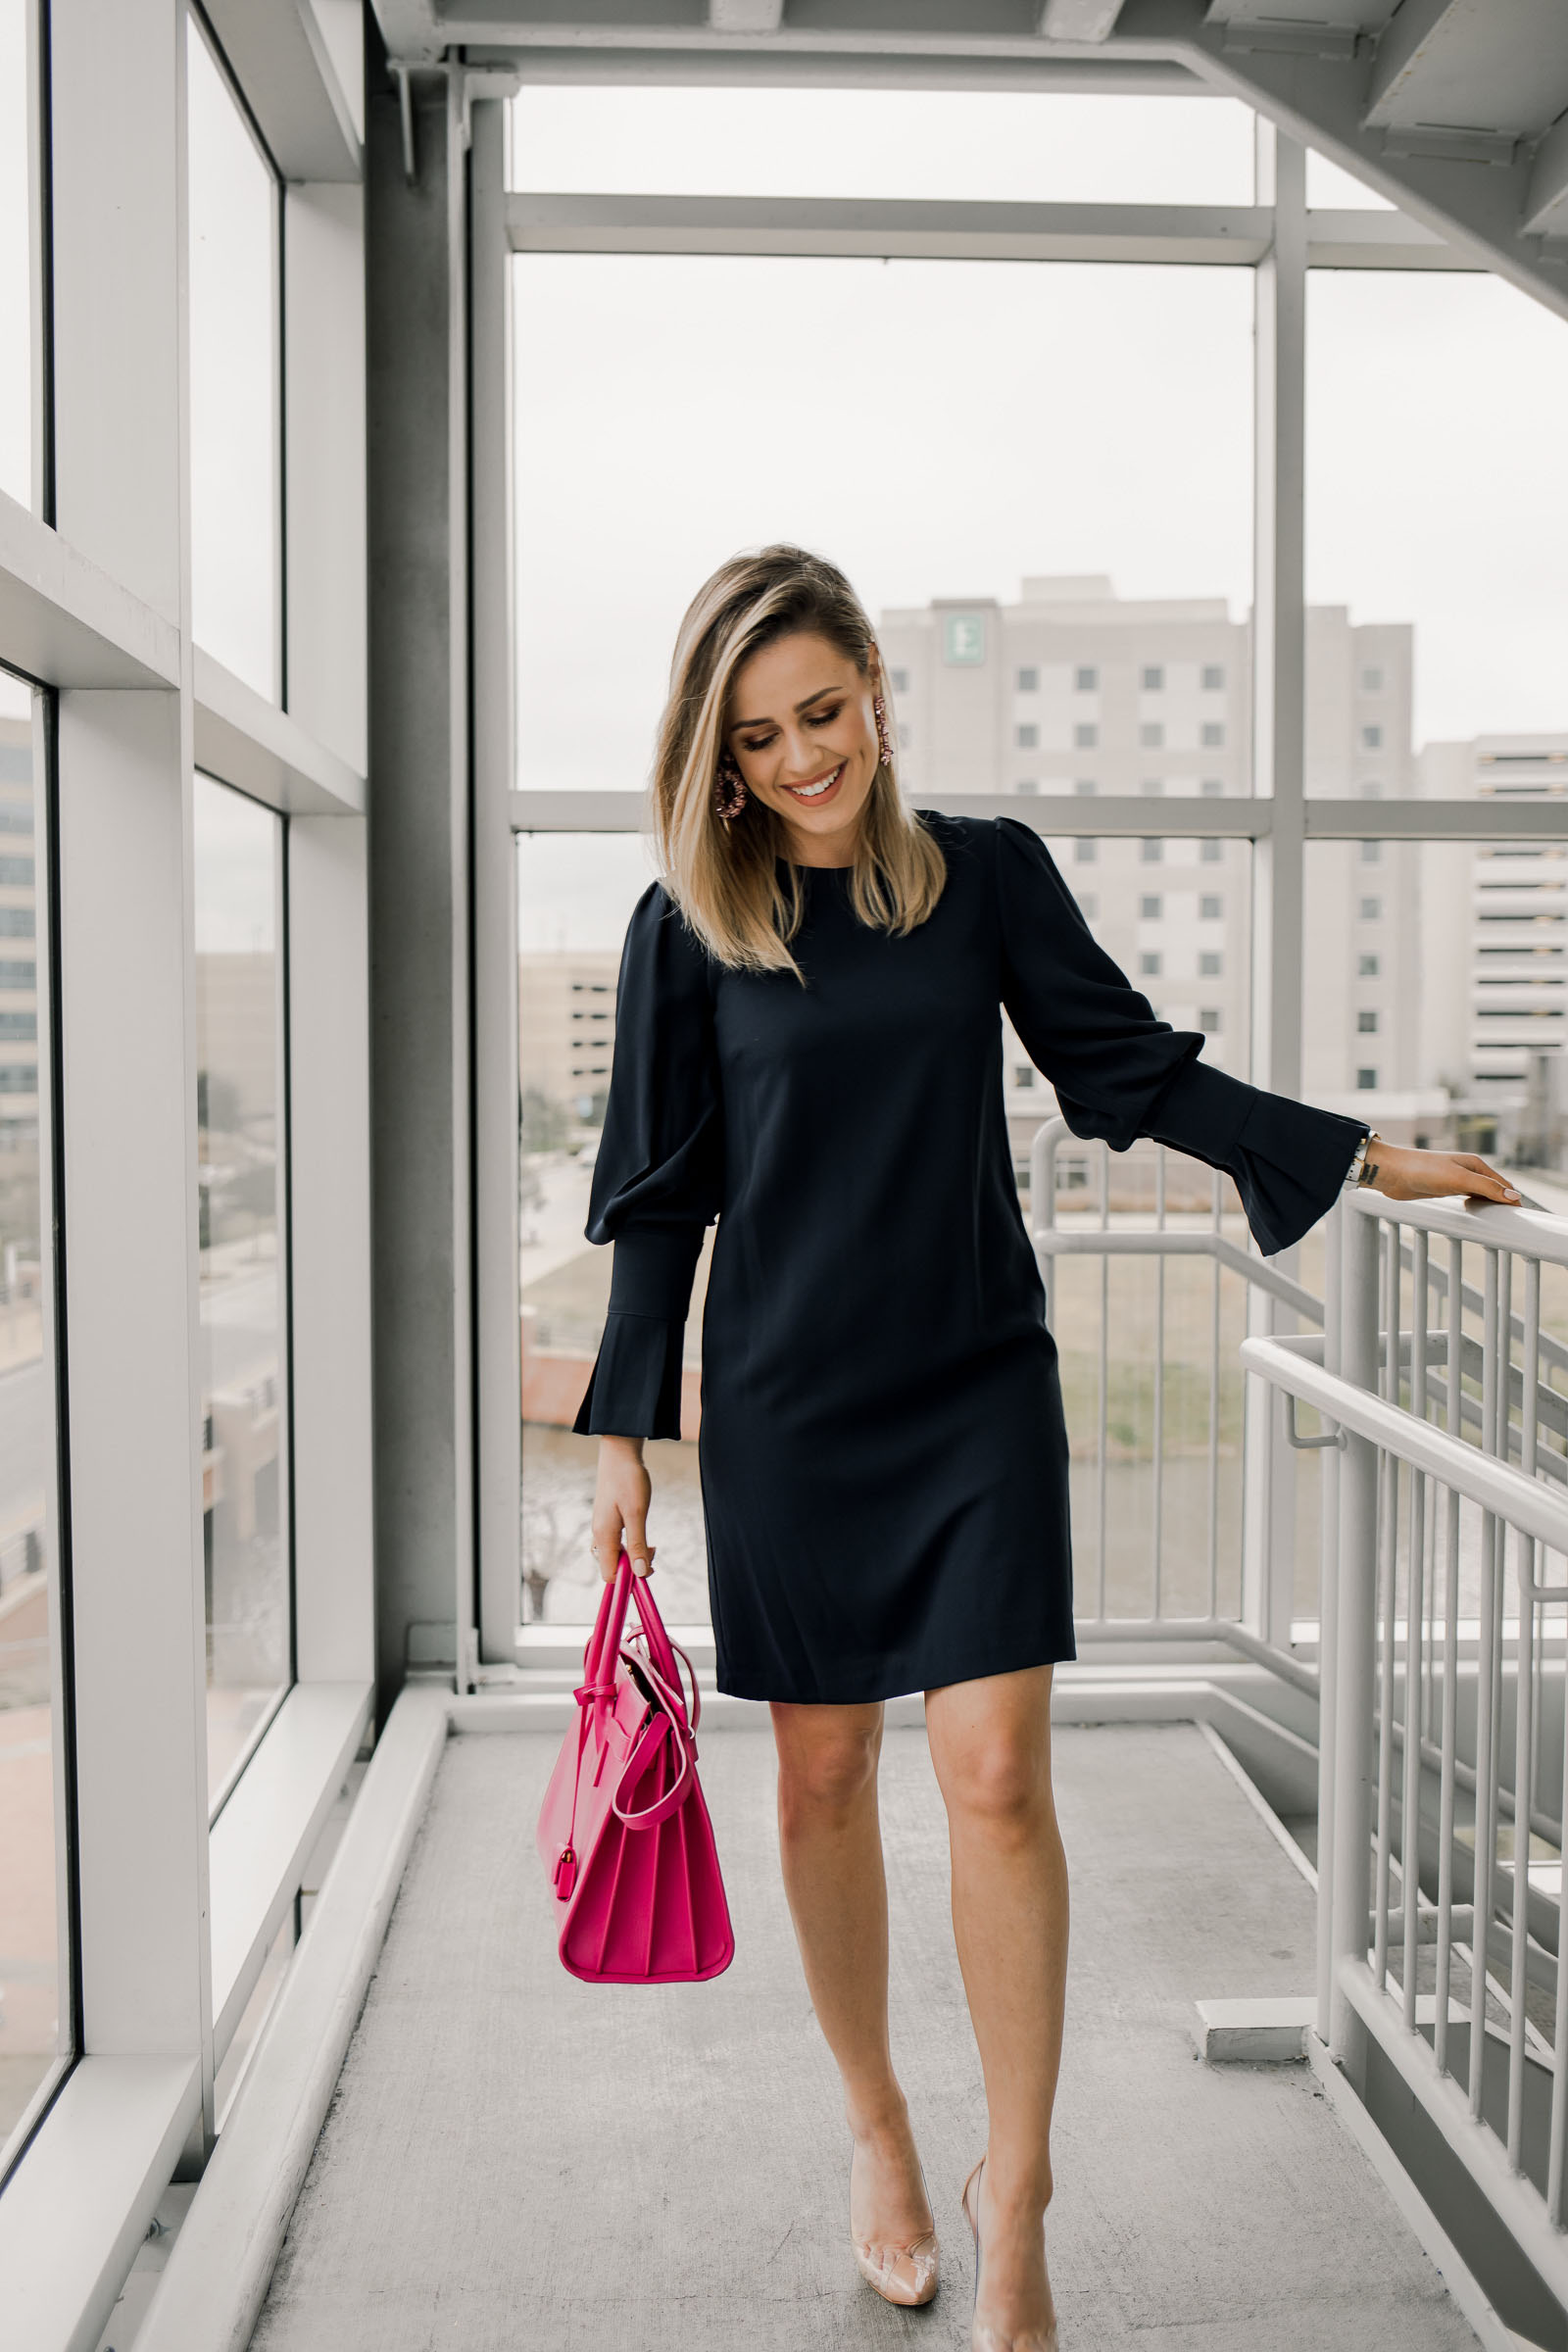 Looking for ideas on what to wear to work for Valentine's Day? Houston fashion blogger Uptown with Elly Brown shares a chic outfit!